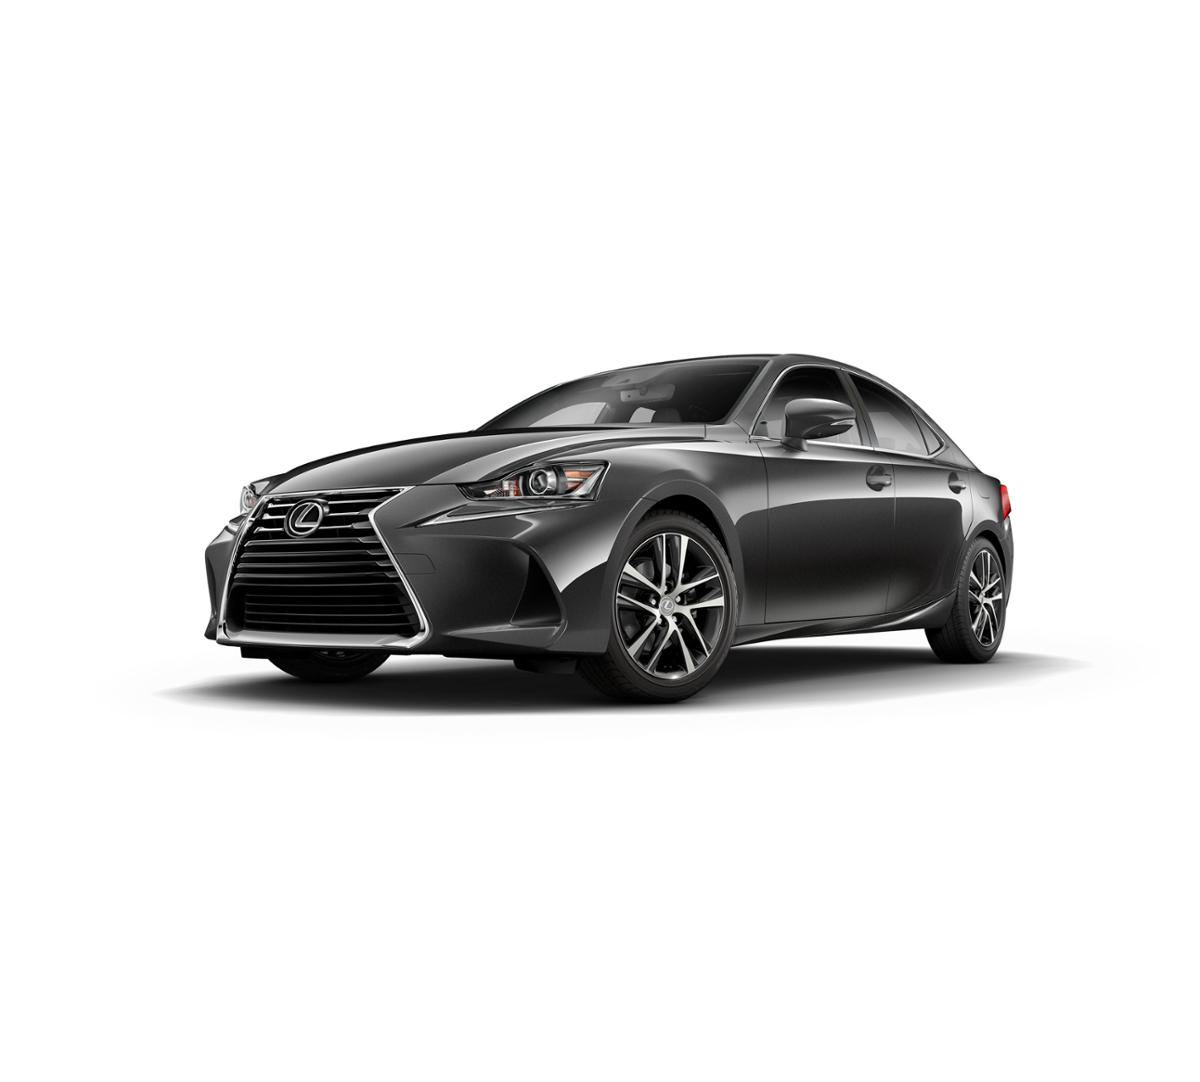 2018 Lexus IS 300 Vehicle Photo in Santa Barbara, CA 93105